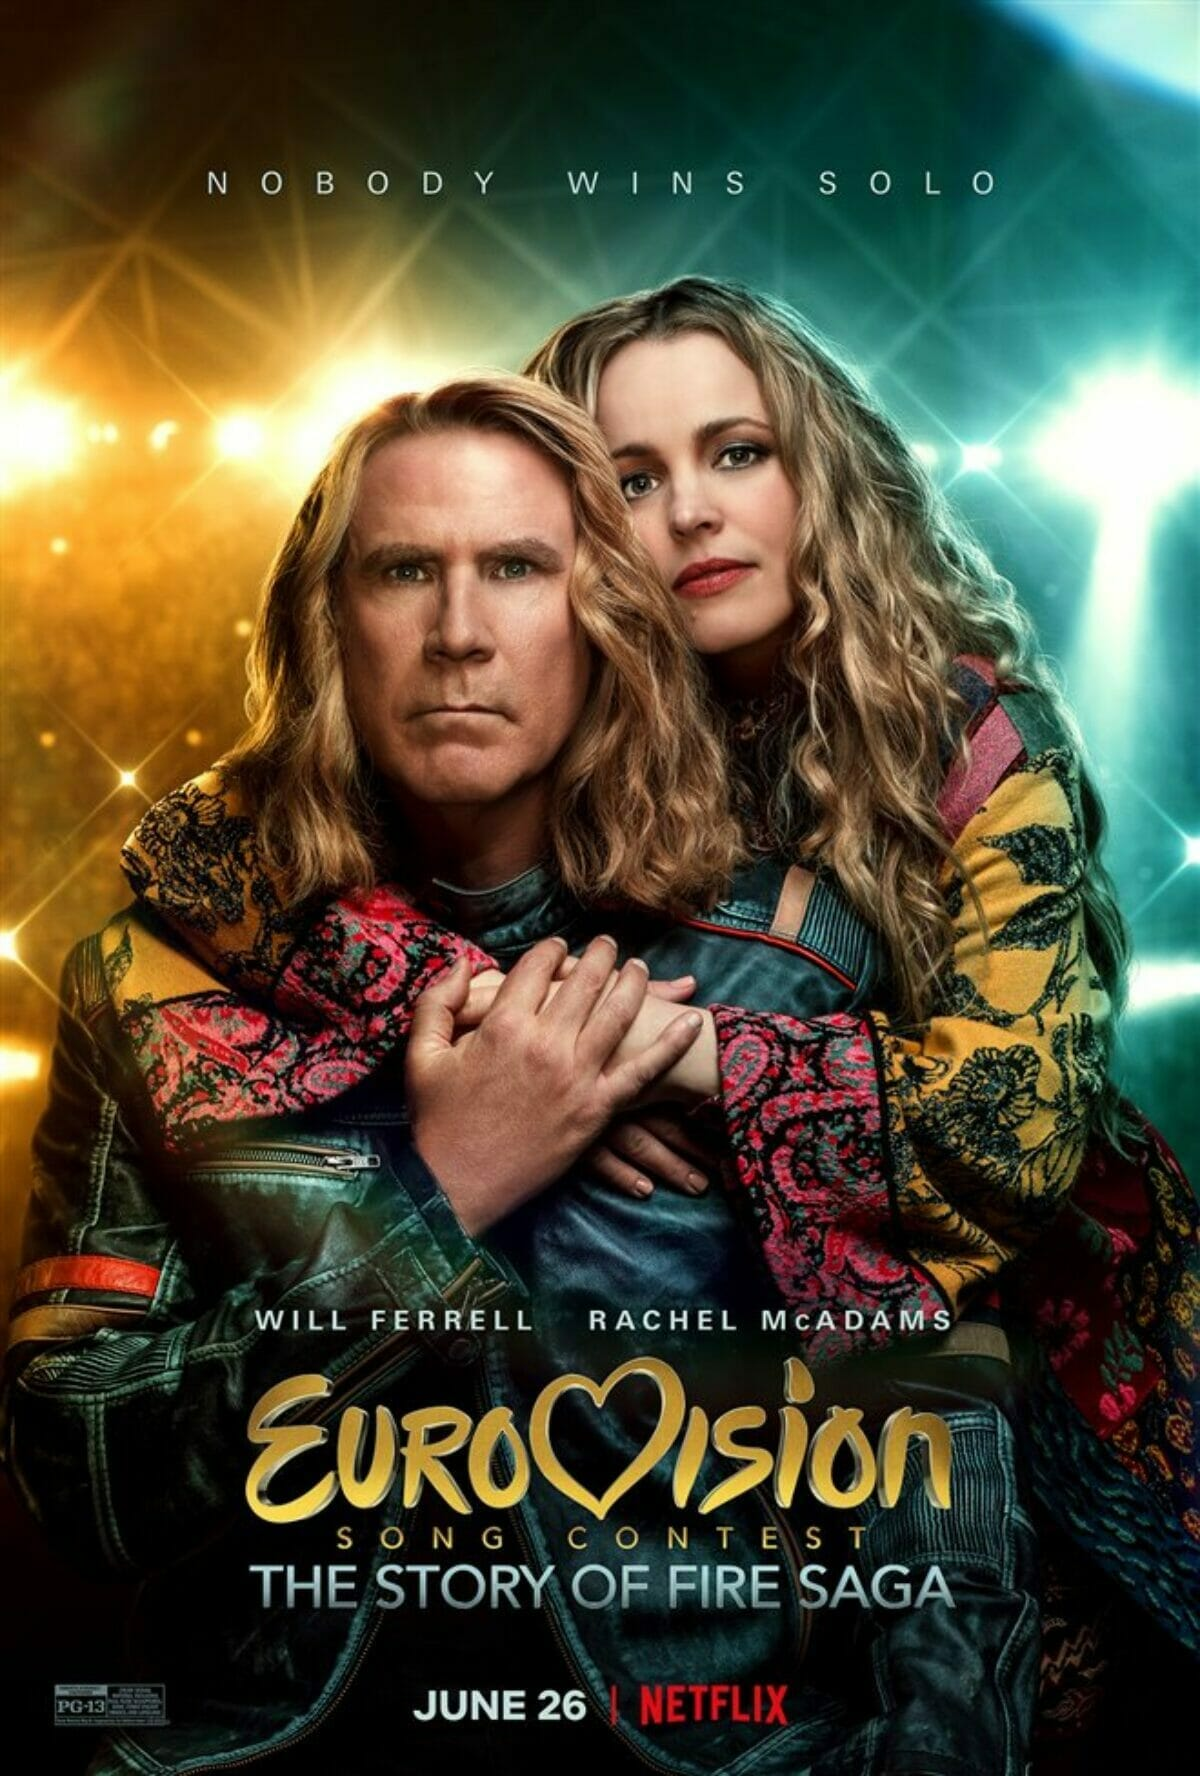 eurovision-song-contest-the-story-of-fire-saga-netflix-poster